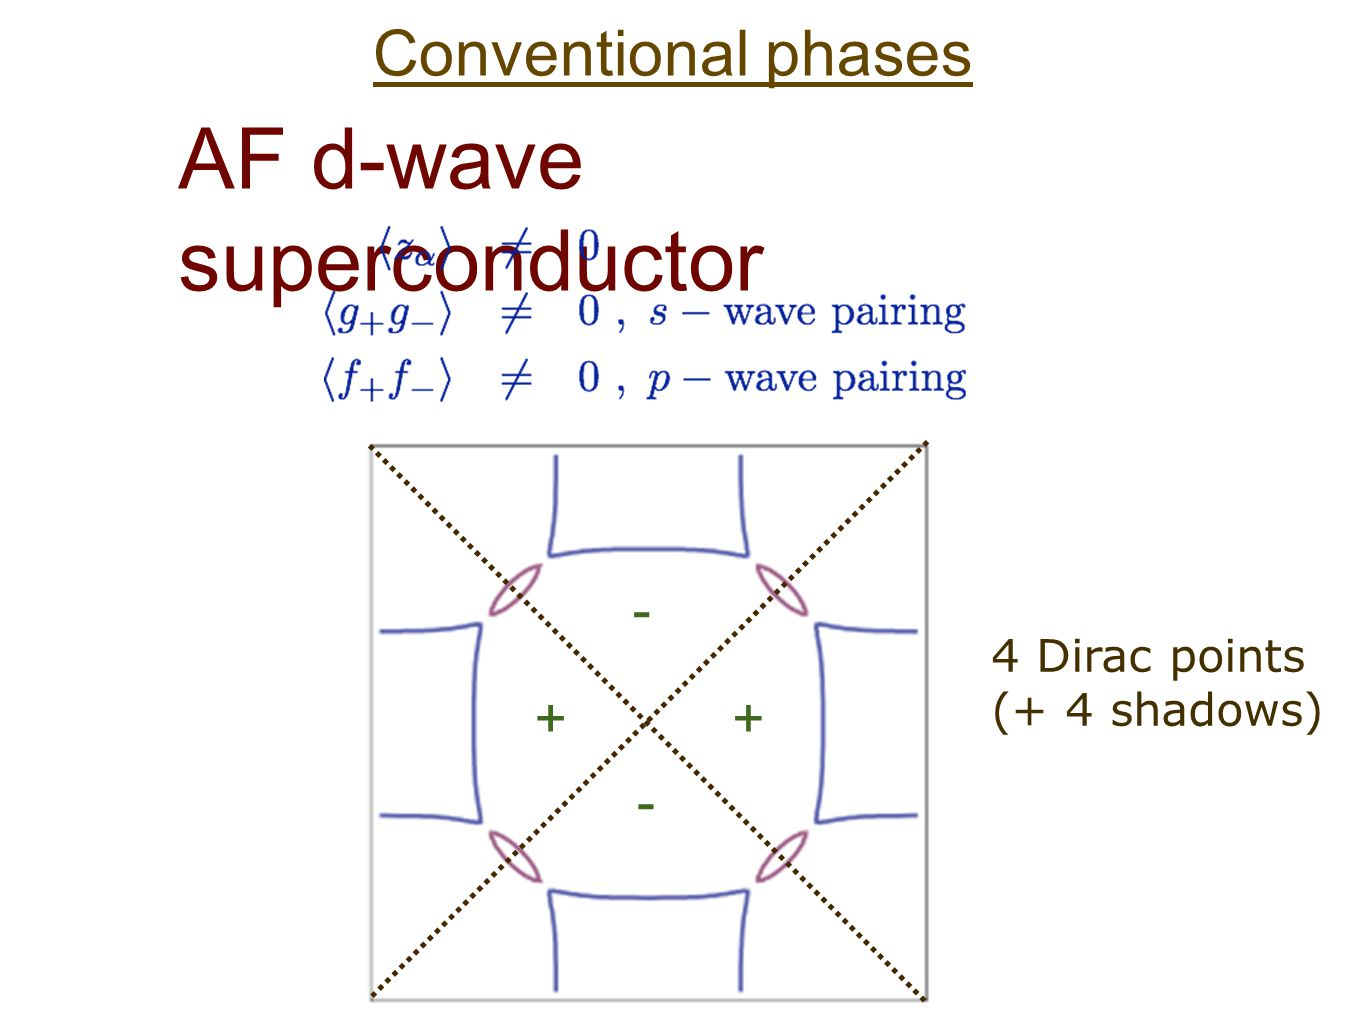 Conventional phases AF d-wave superconductor 4 Dirac points (+ 4 shadows)